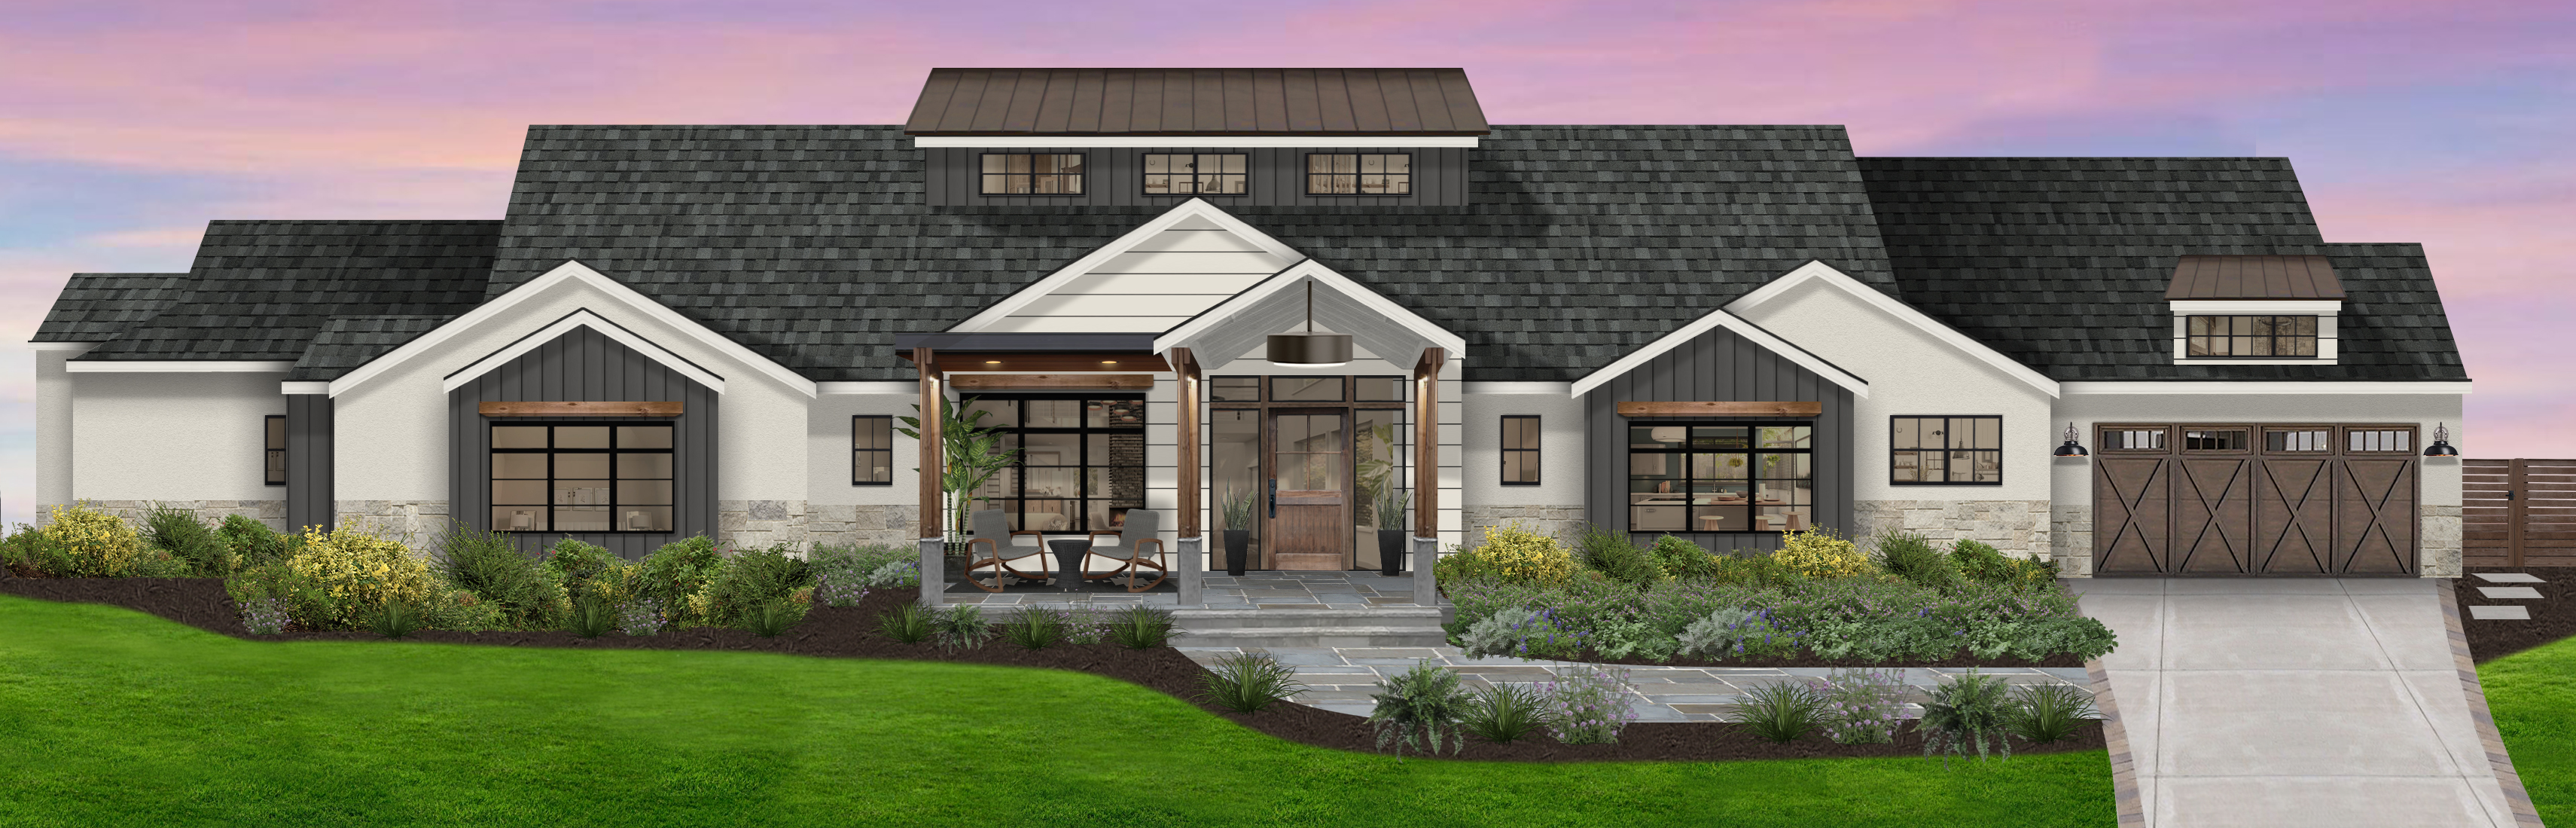 Virtual rendering of a home that makes use of James Hardie siding